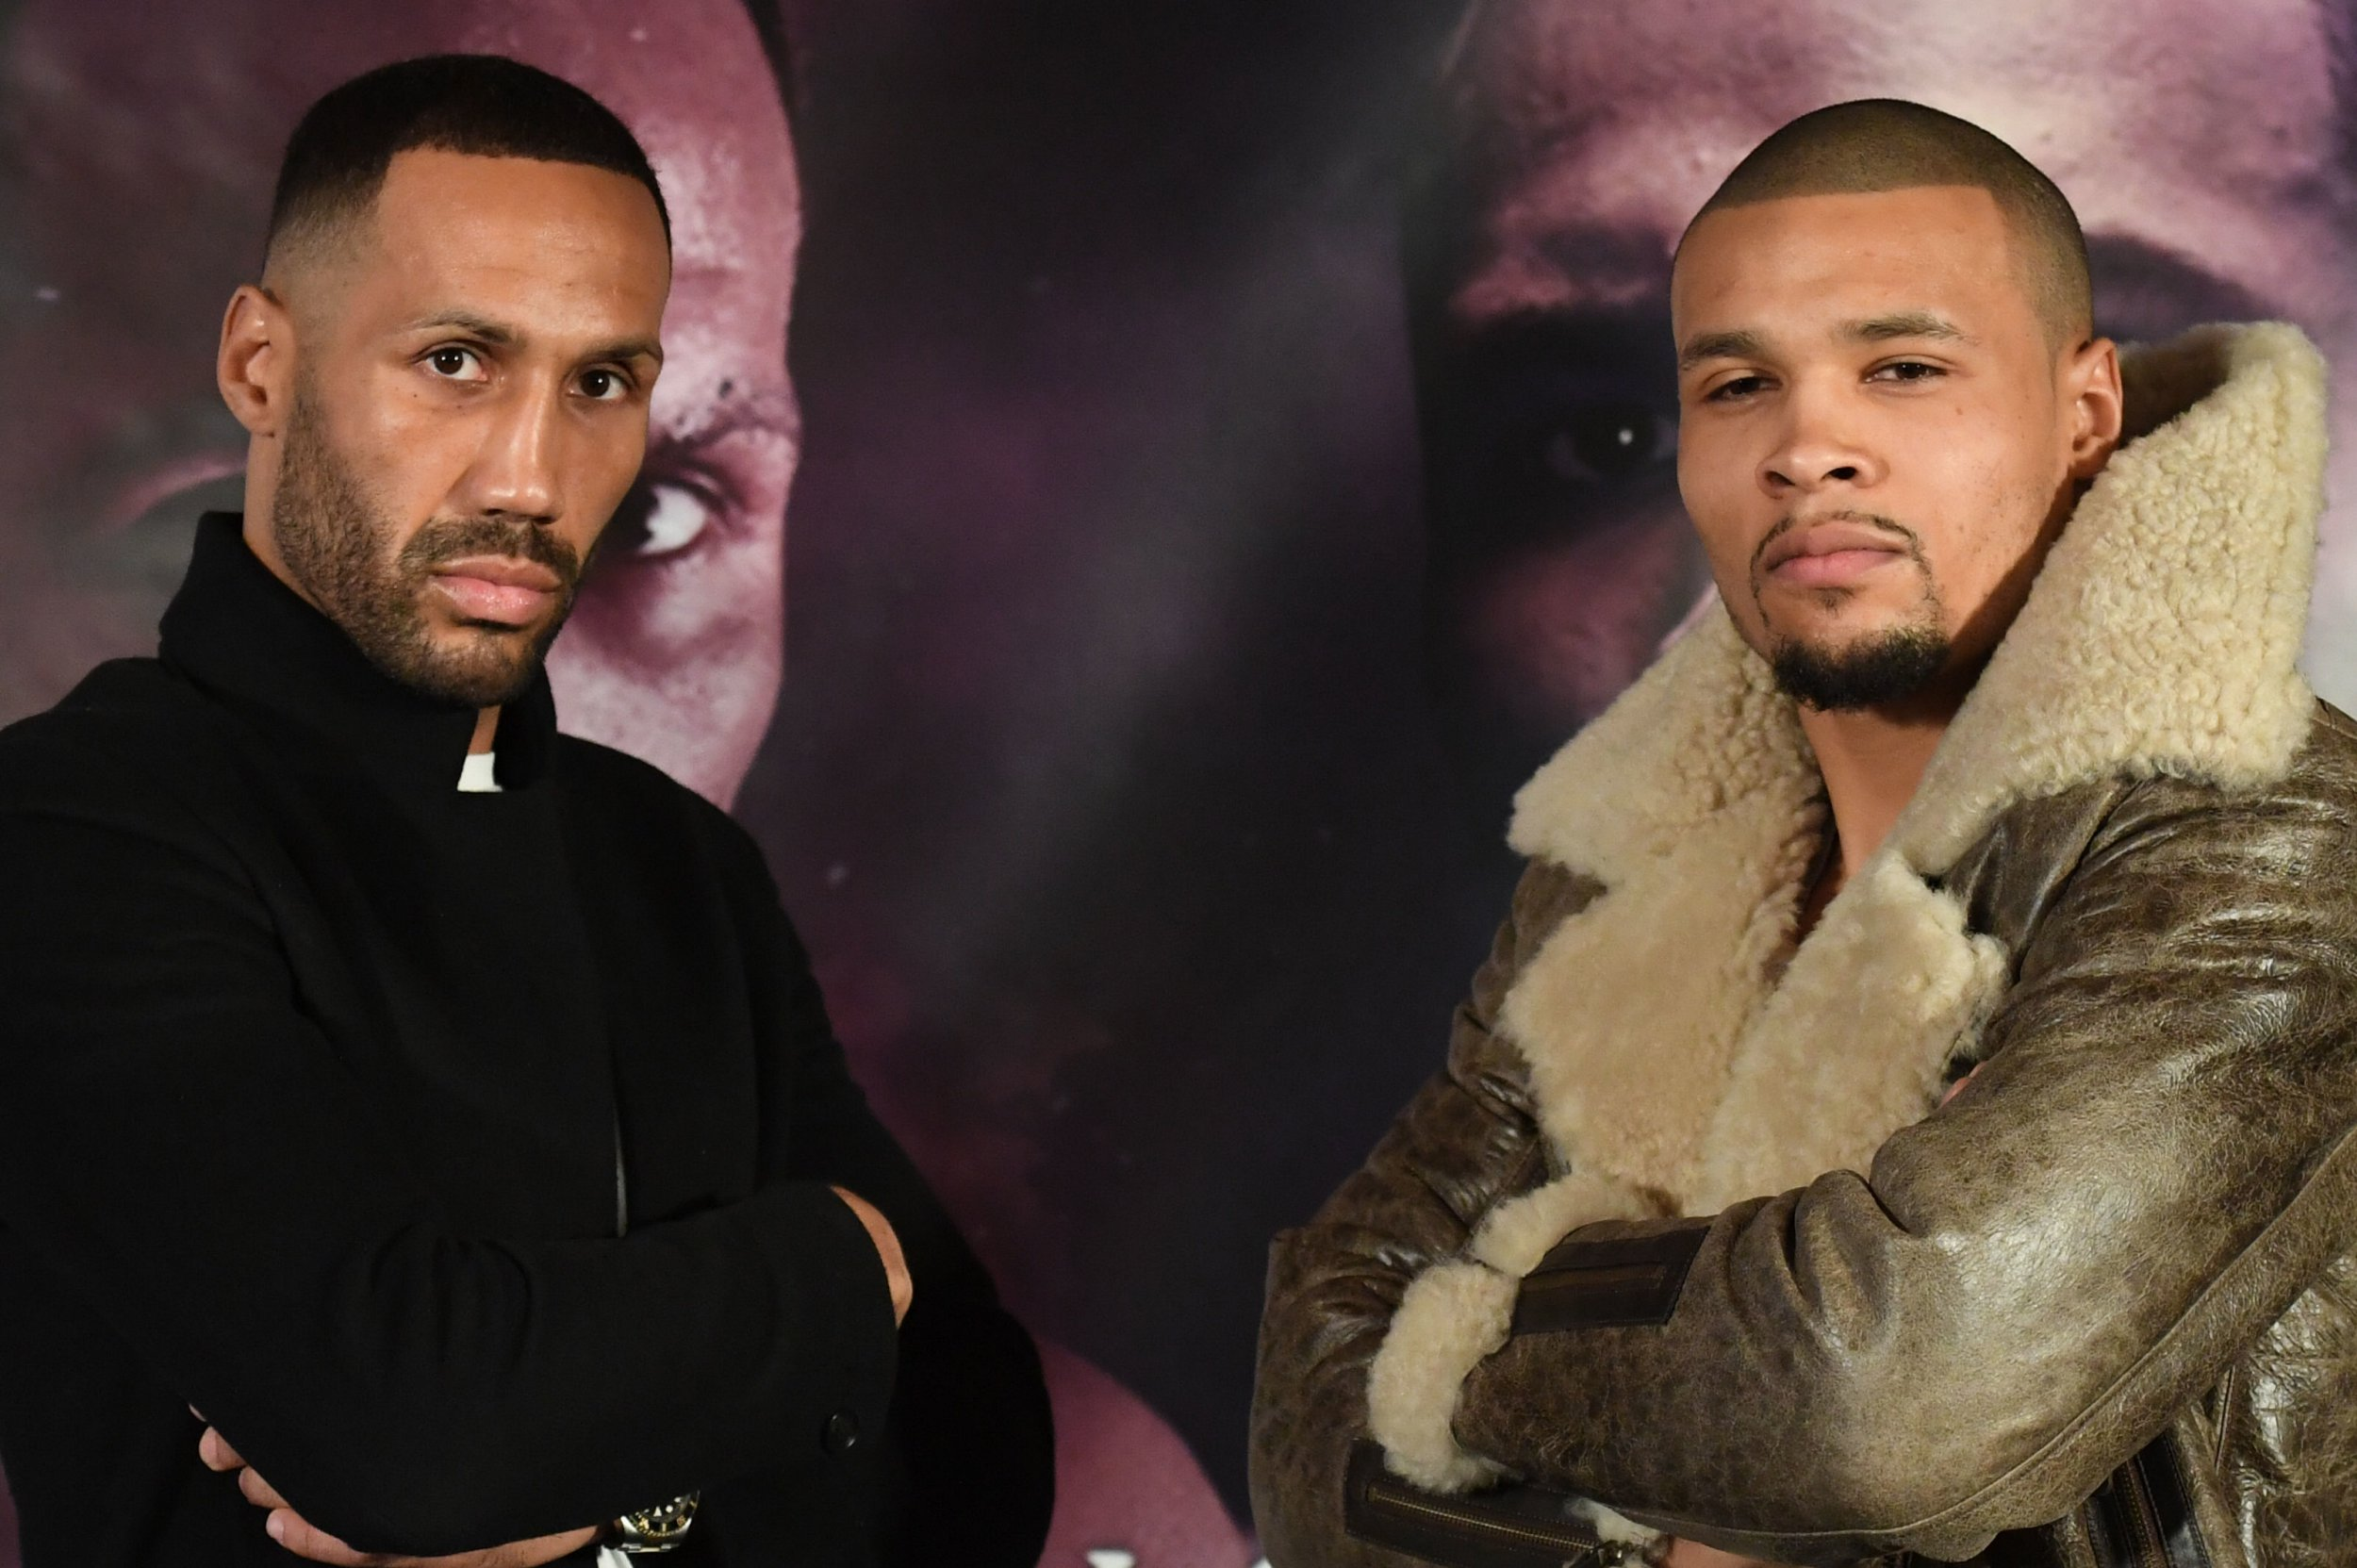 James DeGale and Chris Eubank Jr during a press conference at the Hotel Cafe Royal, London. PRESS ASSOCIATION Photo. Picture date: Thursday January 3, 2019. See PA story BOXING London. Photo credit should read: Stefan Rousseau/PA Wire